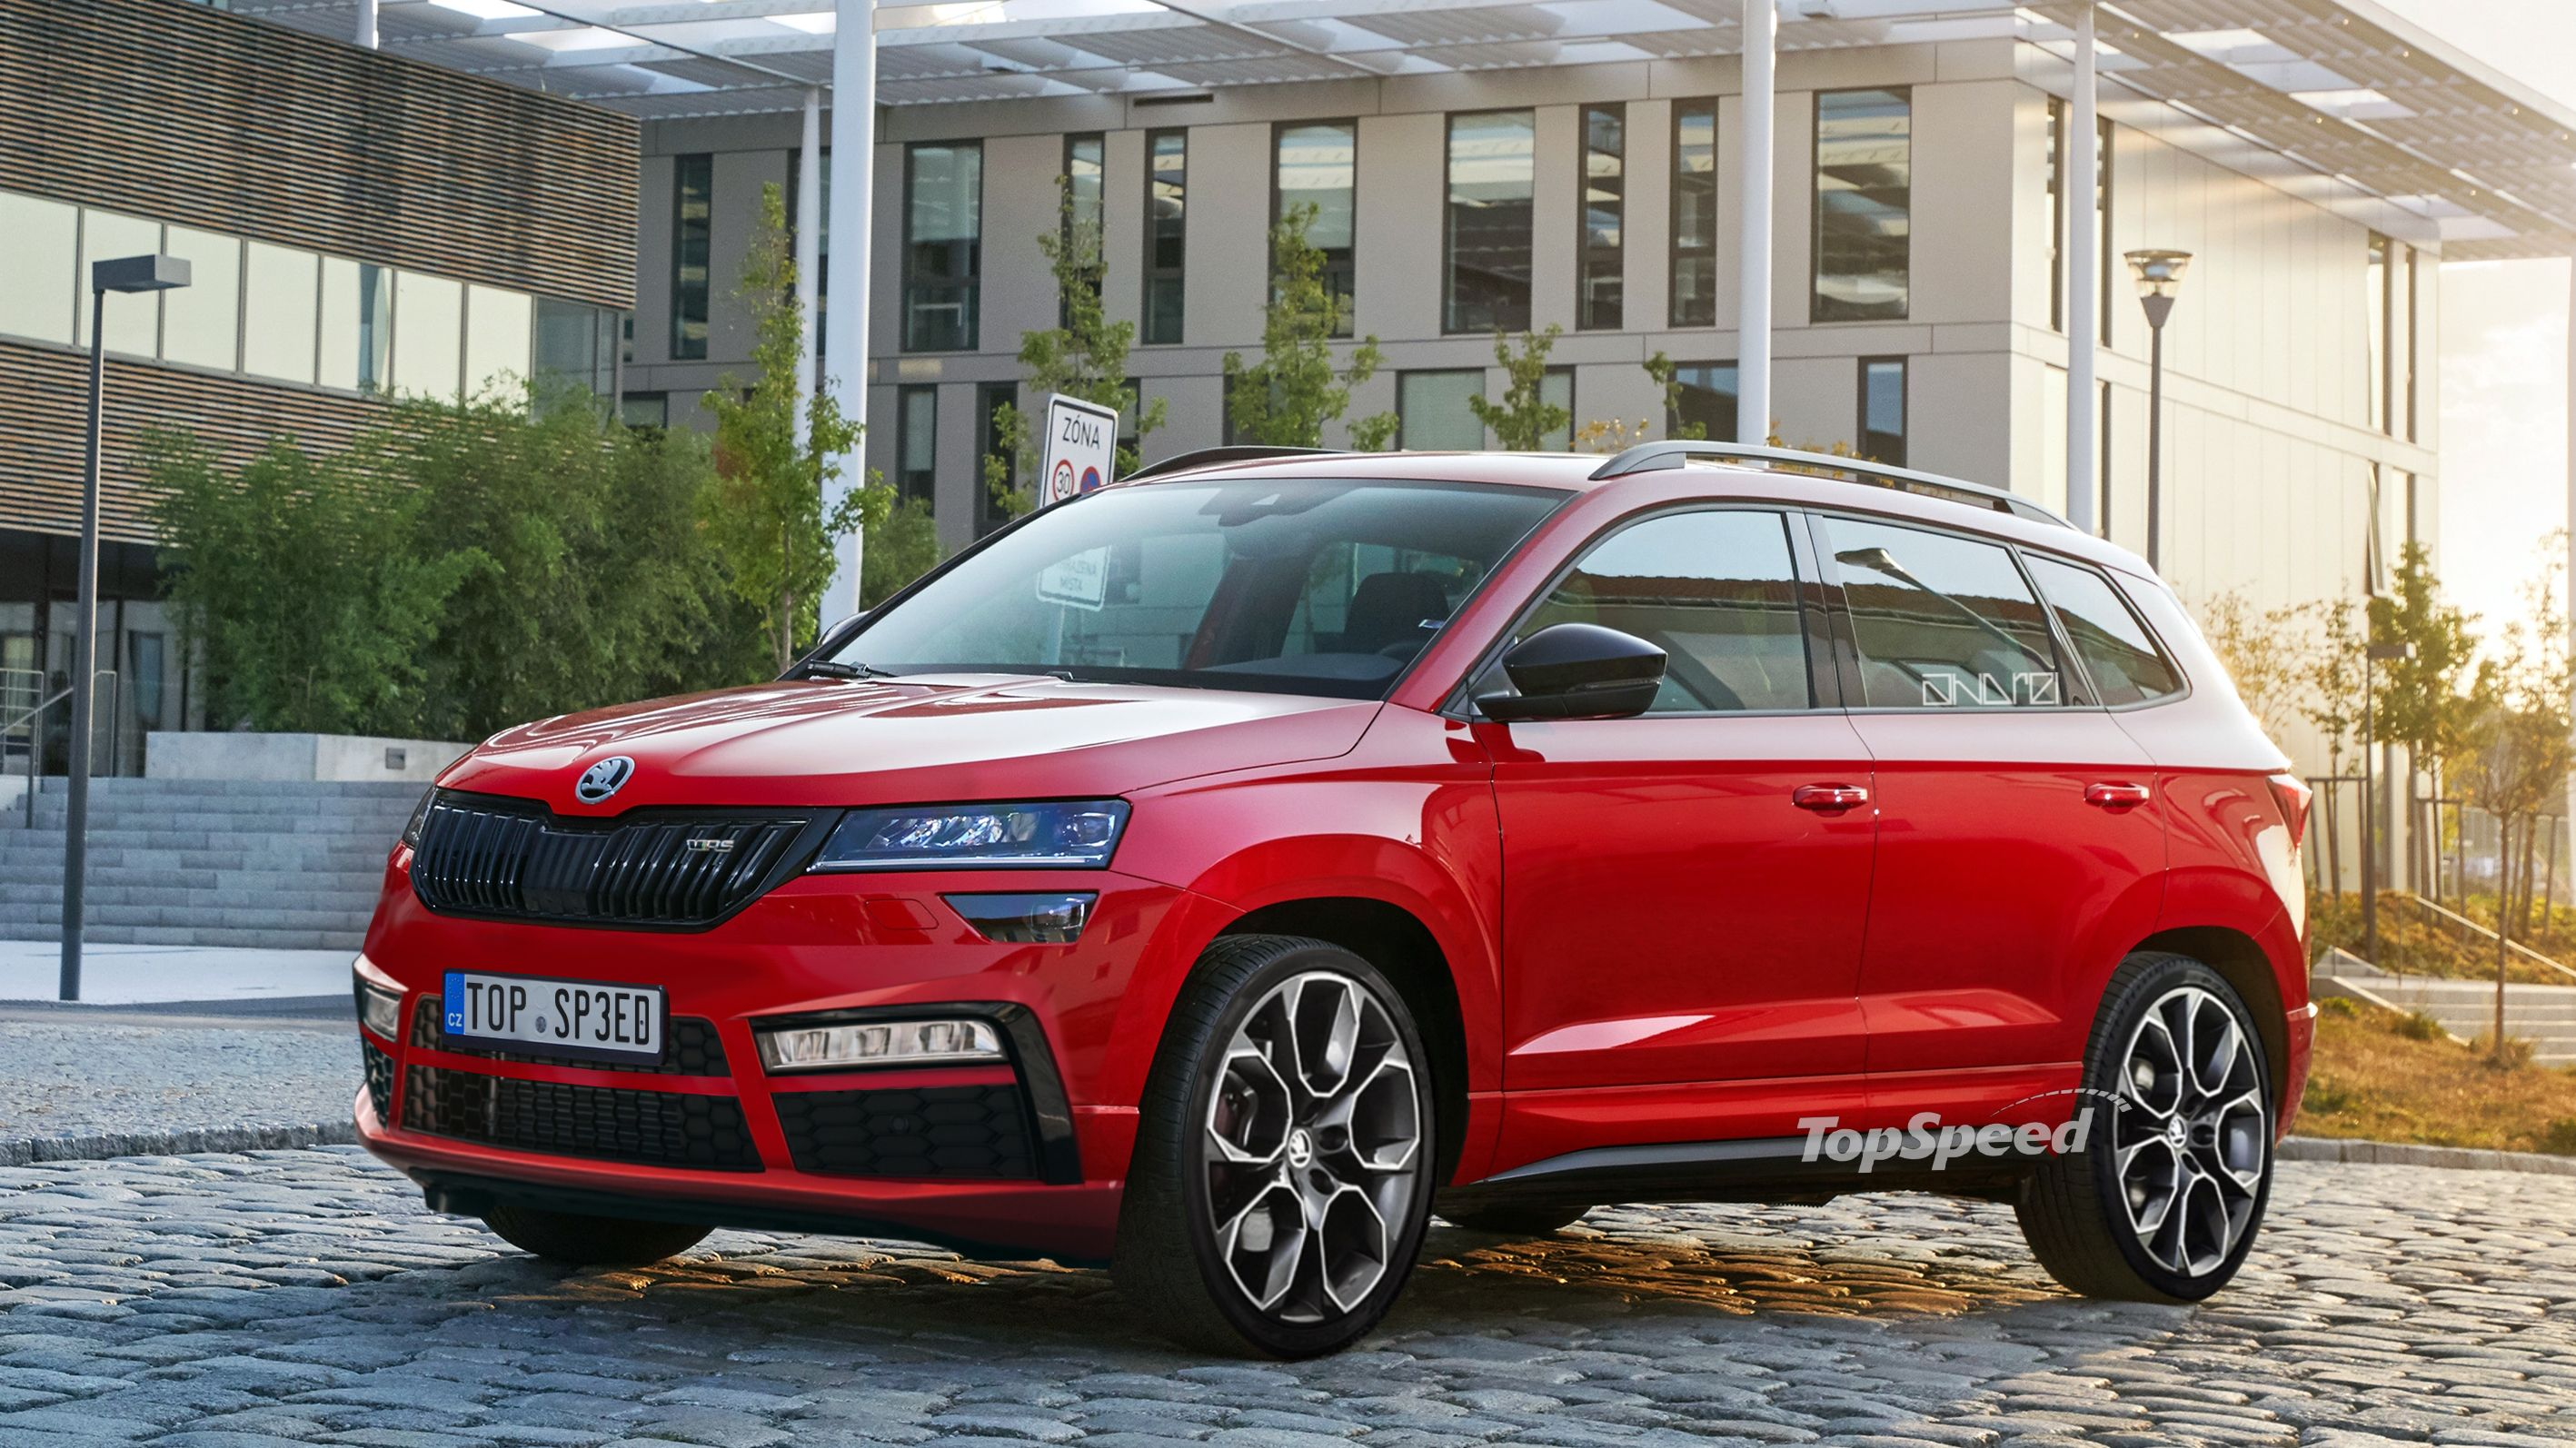 Will The 2021 Skoda Karoq Rs Fill In A Niche That Volkswagen Doesn